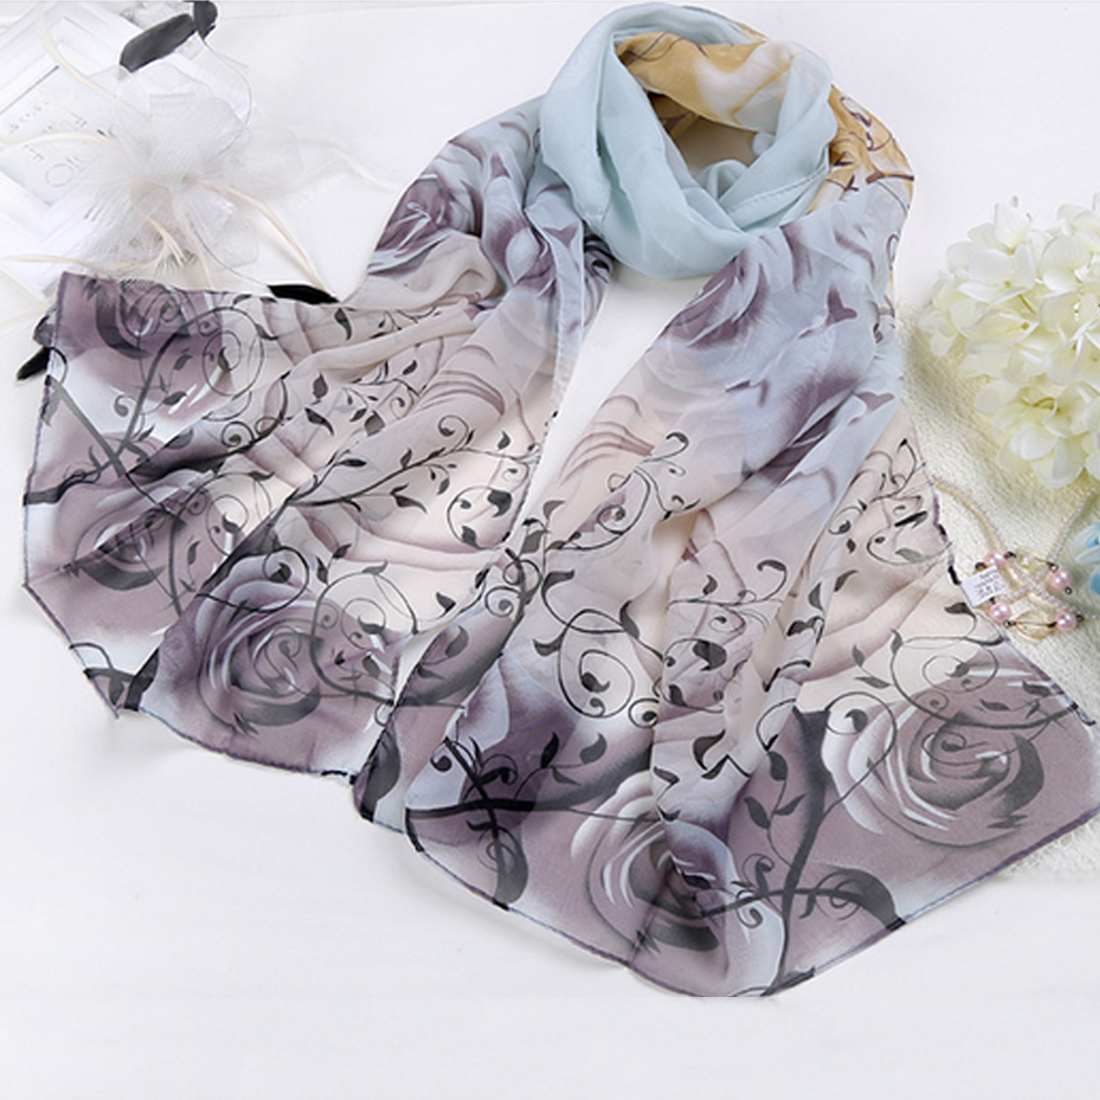 Rose Pattern Lady Women Fashion Stylish Soft Scarf Shawl Wrap Headscarf